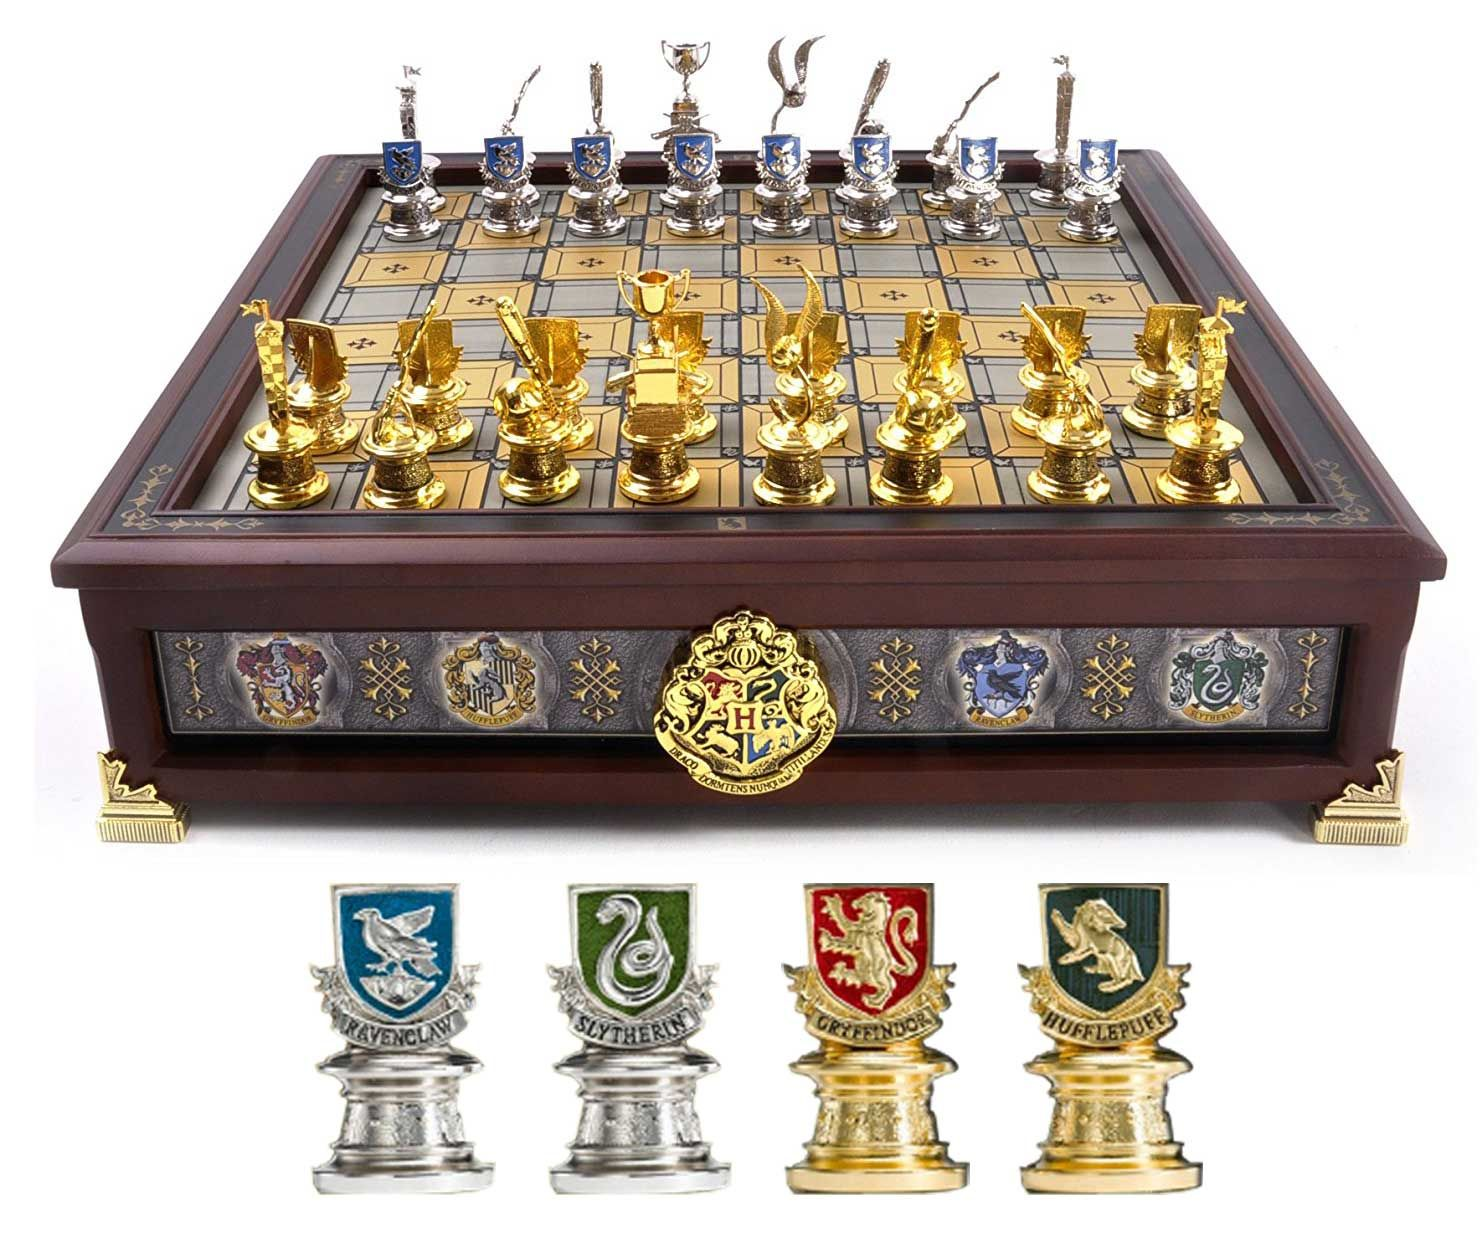 harry potter hogwarts houses and quidditch chess set play. Black Bedroom Furniture Sets. Home Design Ideas